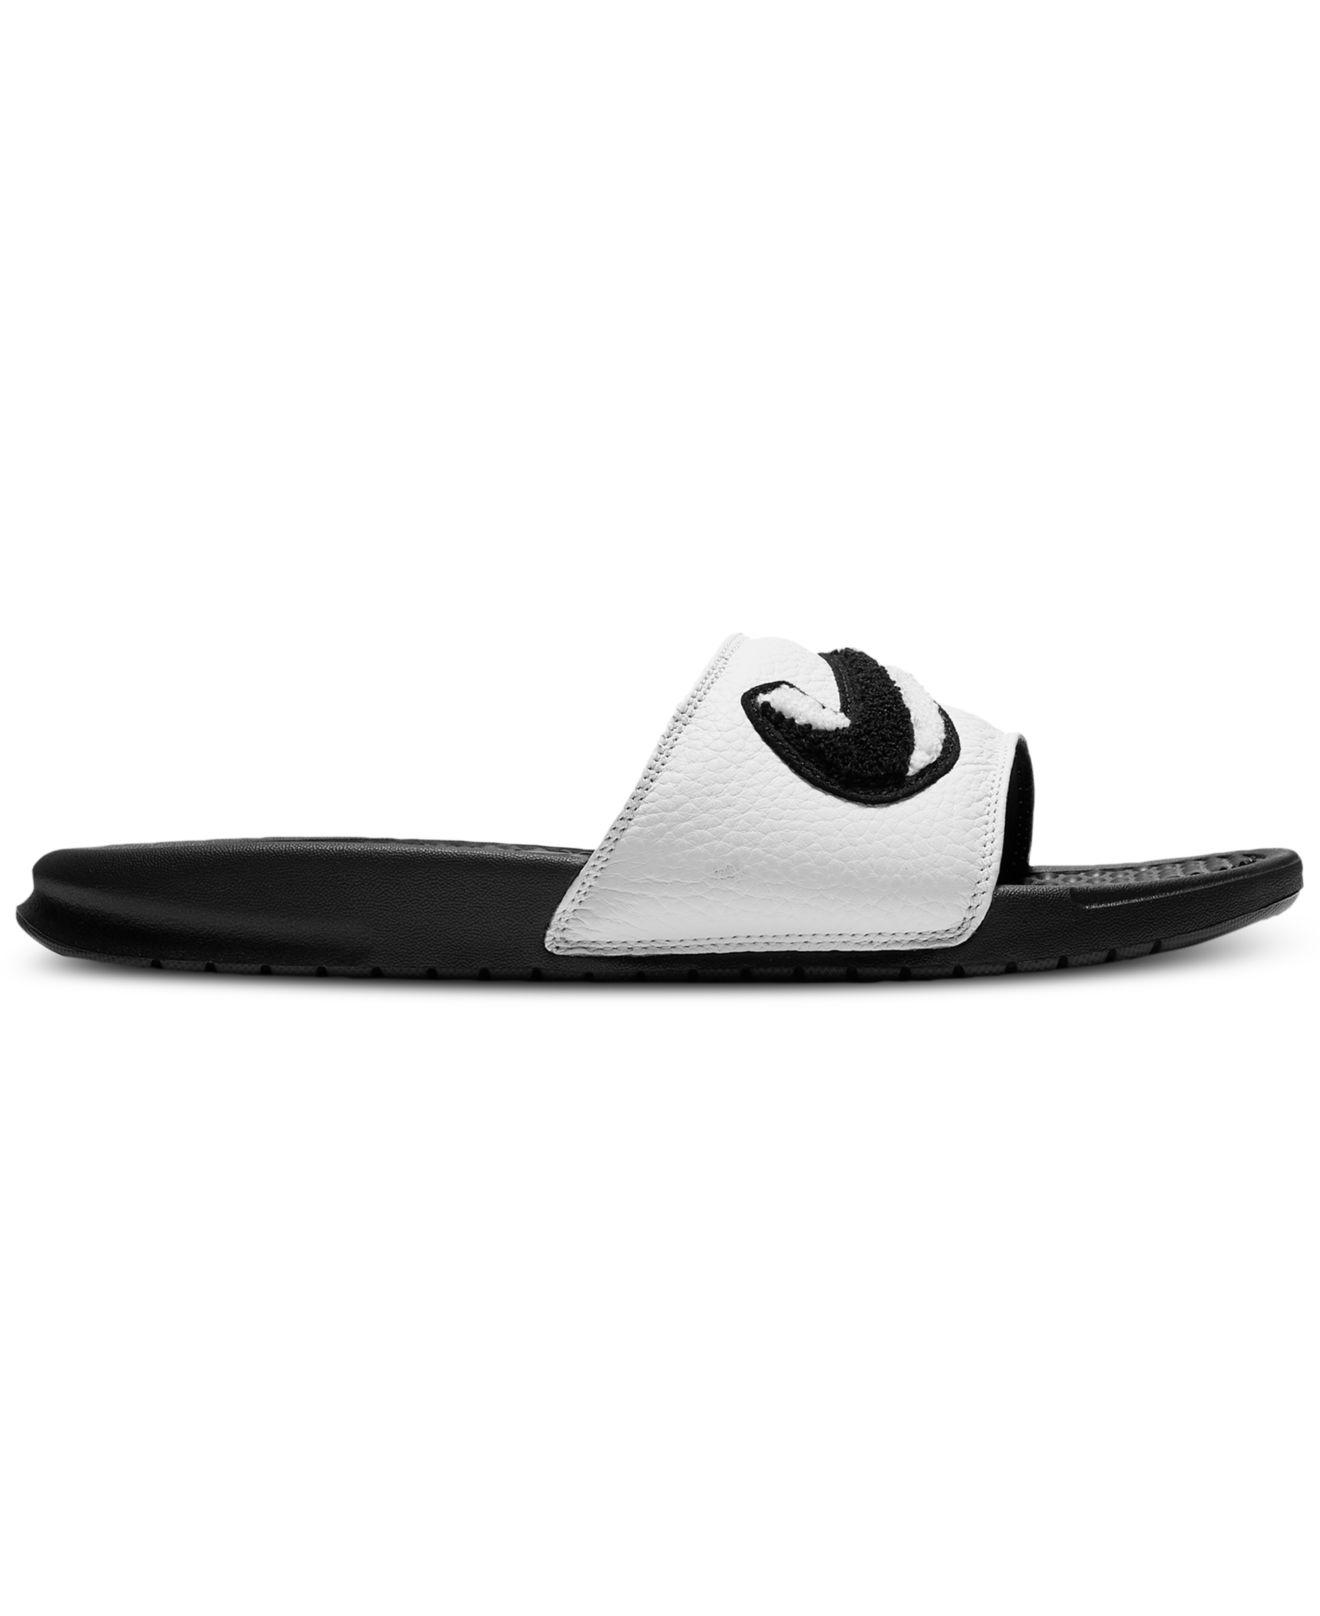 fbe349b8498 Lyst - Nike Benassi Jdi Chenille Slide Sandals From Finish Line in ...